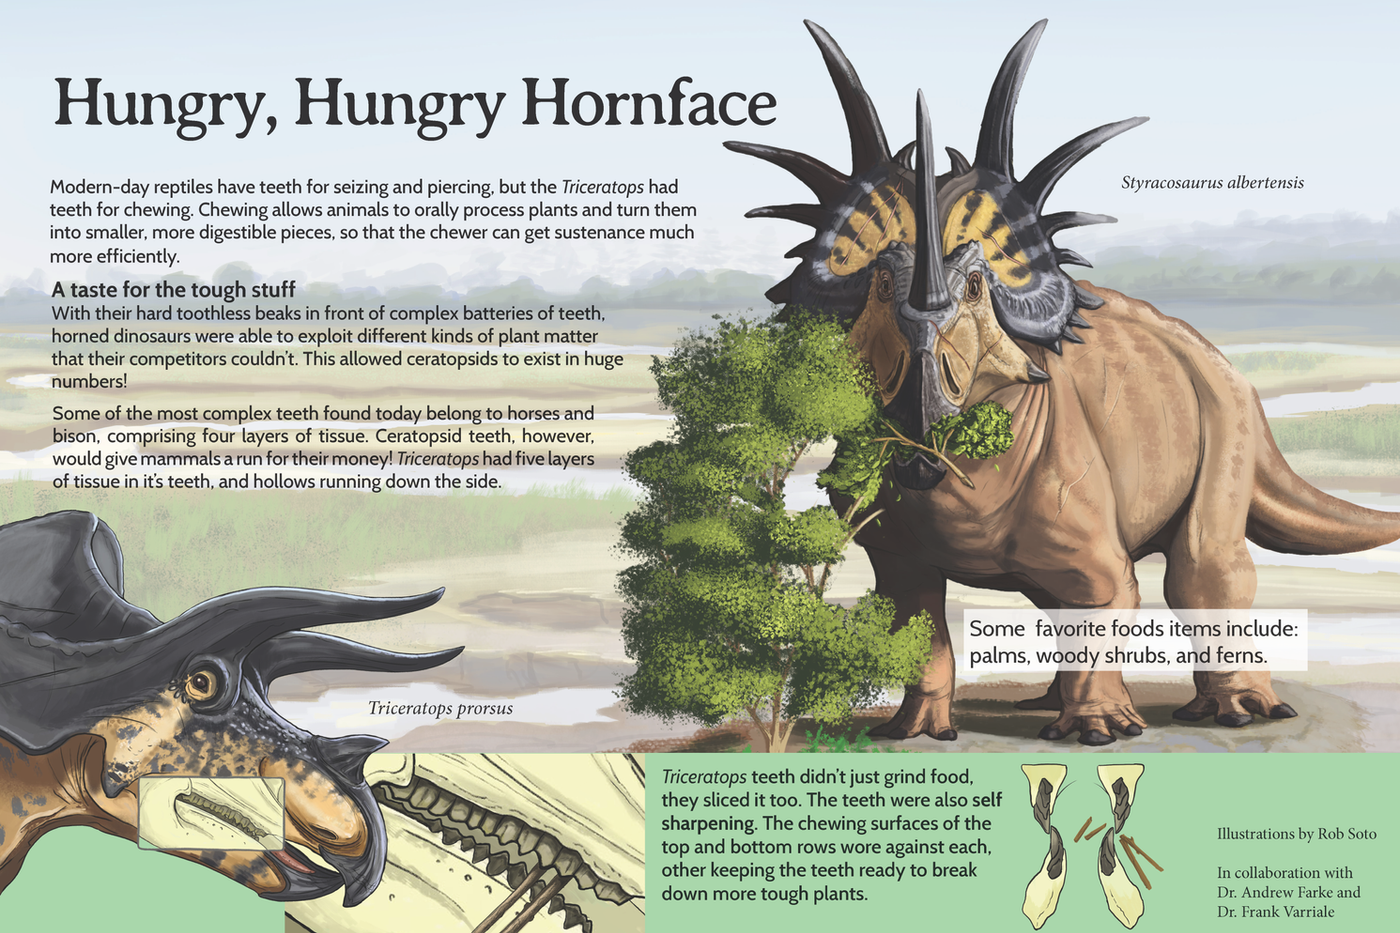 Hungry, hungry hornface